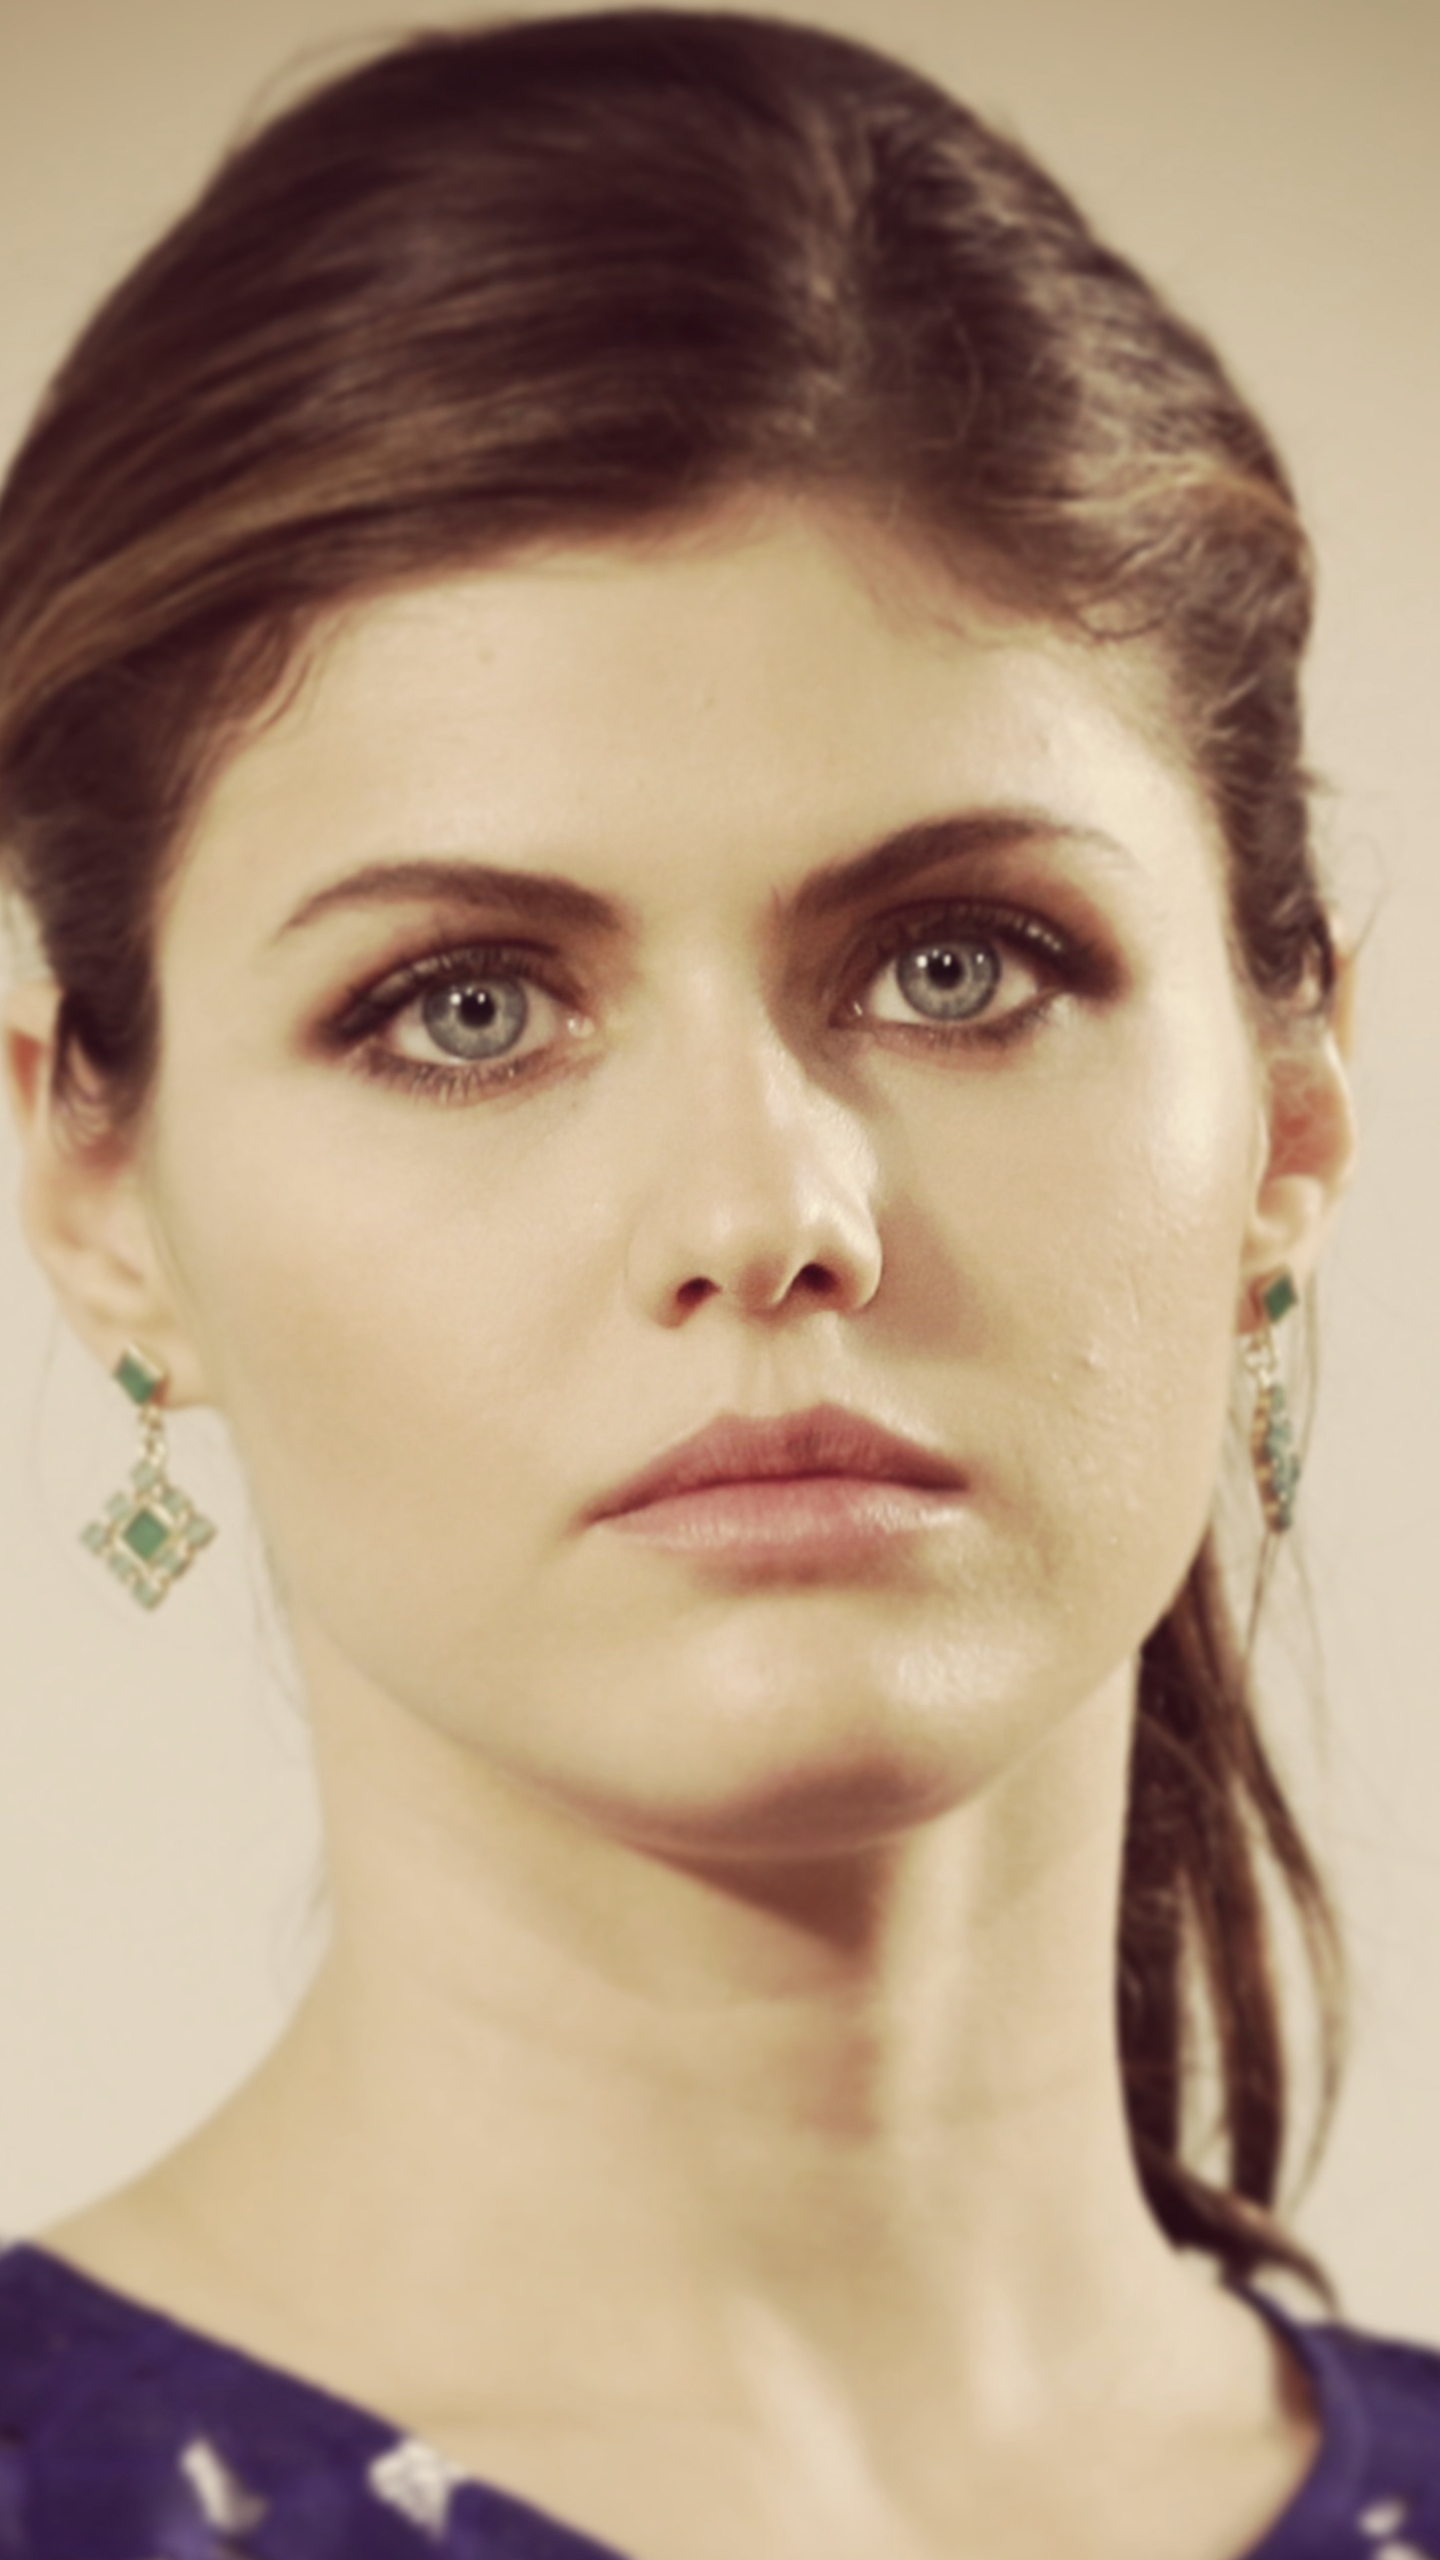 alexandra daddario wallpaper with Celebrity Alexandra Daddario Wallpapers on Hollywood Celebrity Alexandra Daddario Wallpapers furthermore  additionally Madison Riley likewise 60036516 further Celebrity Alexandra Daddario Wallpapers.